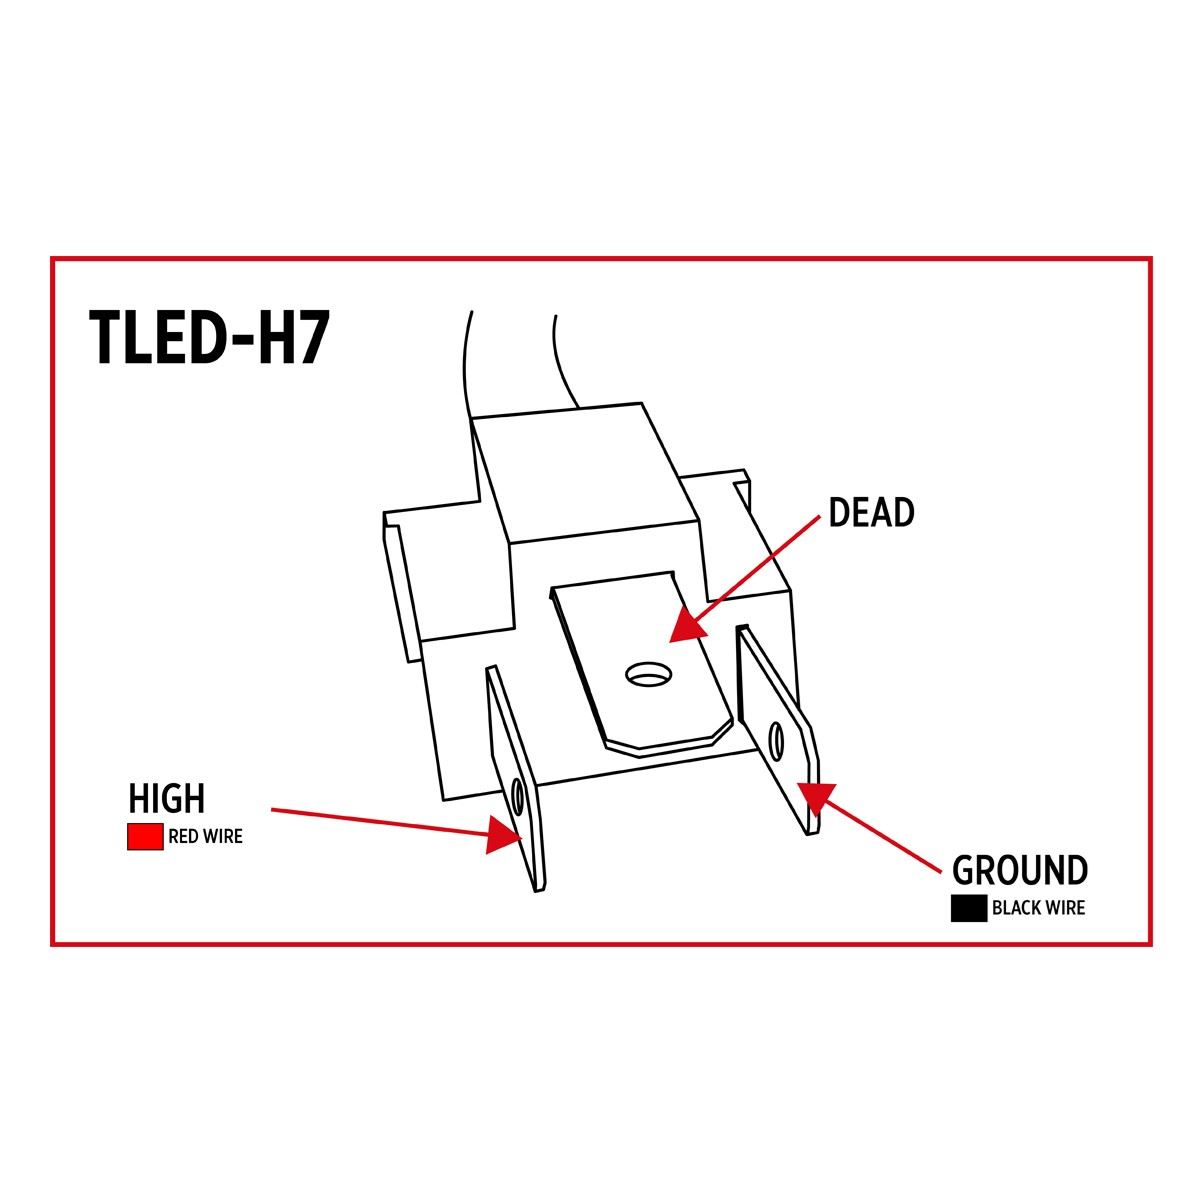 Tled H7 199 With Free Shipping